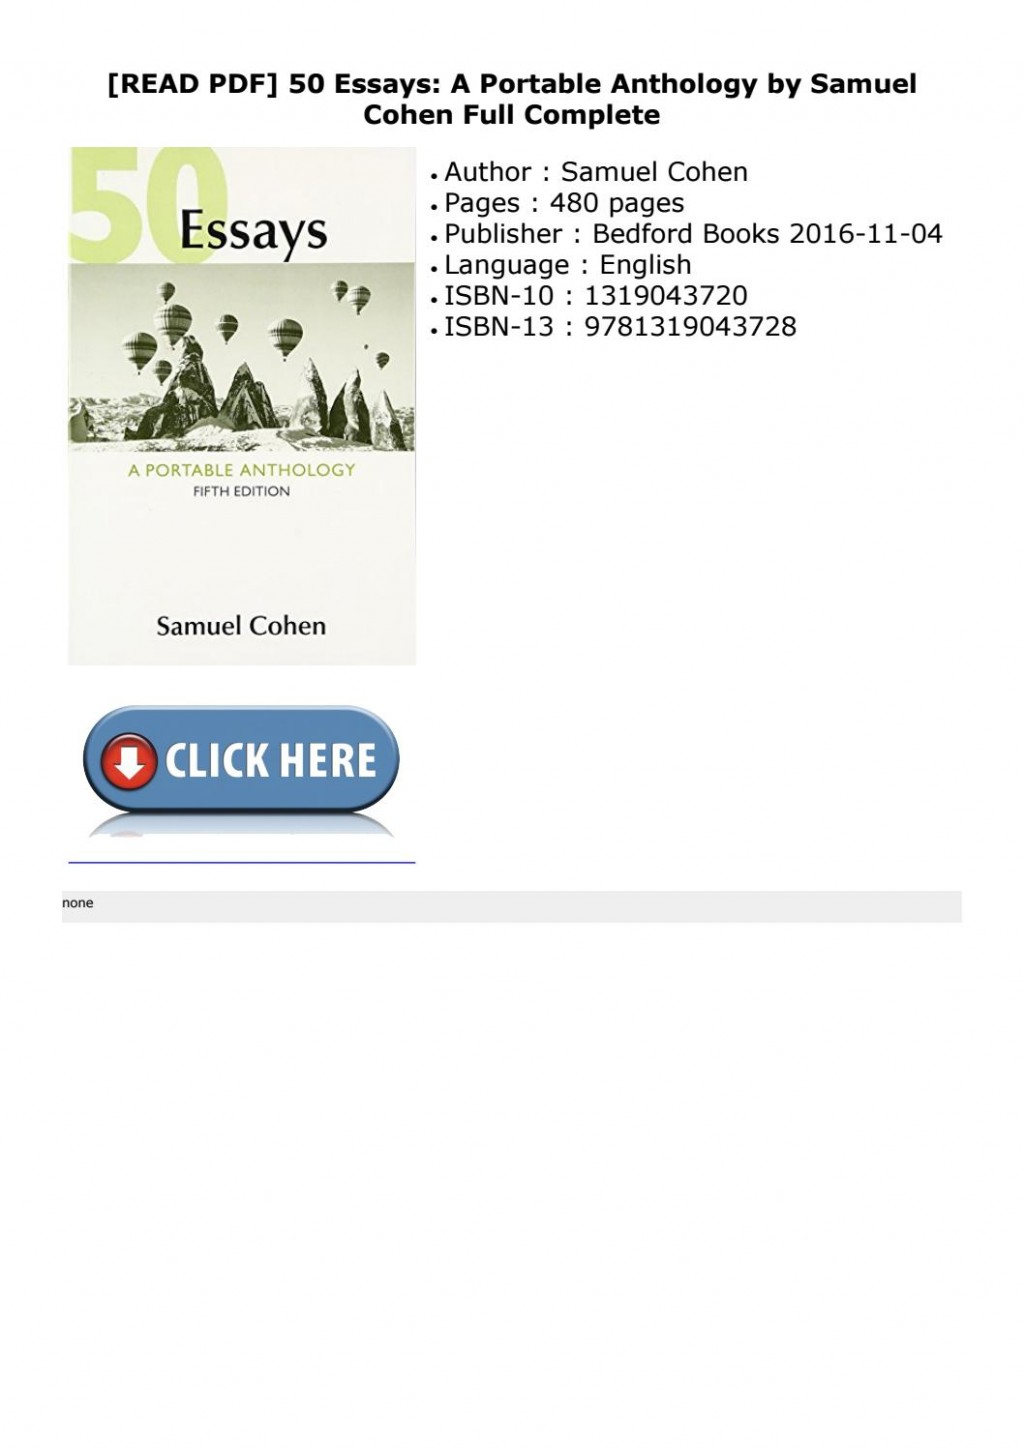 021 Page 1 Essays 5th Edition Essay Imposing 50 Fifty Great Pdf Free A Portable Anthology Ebook Large